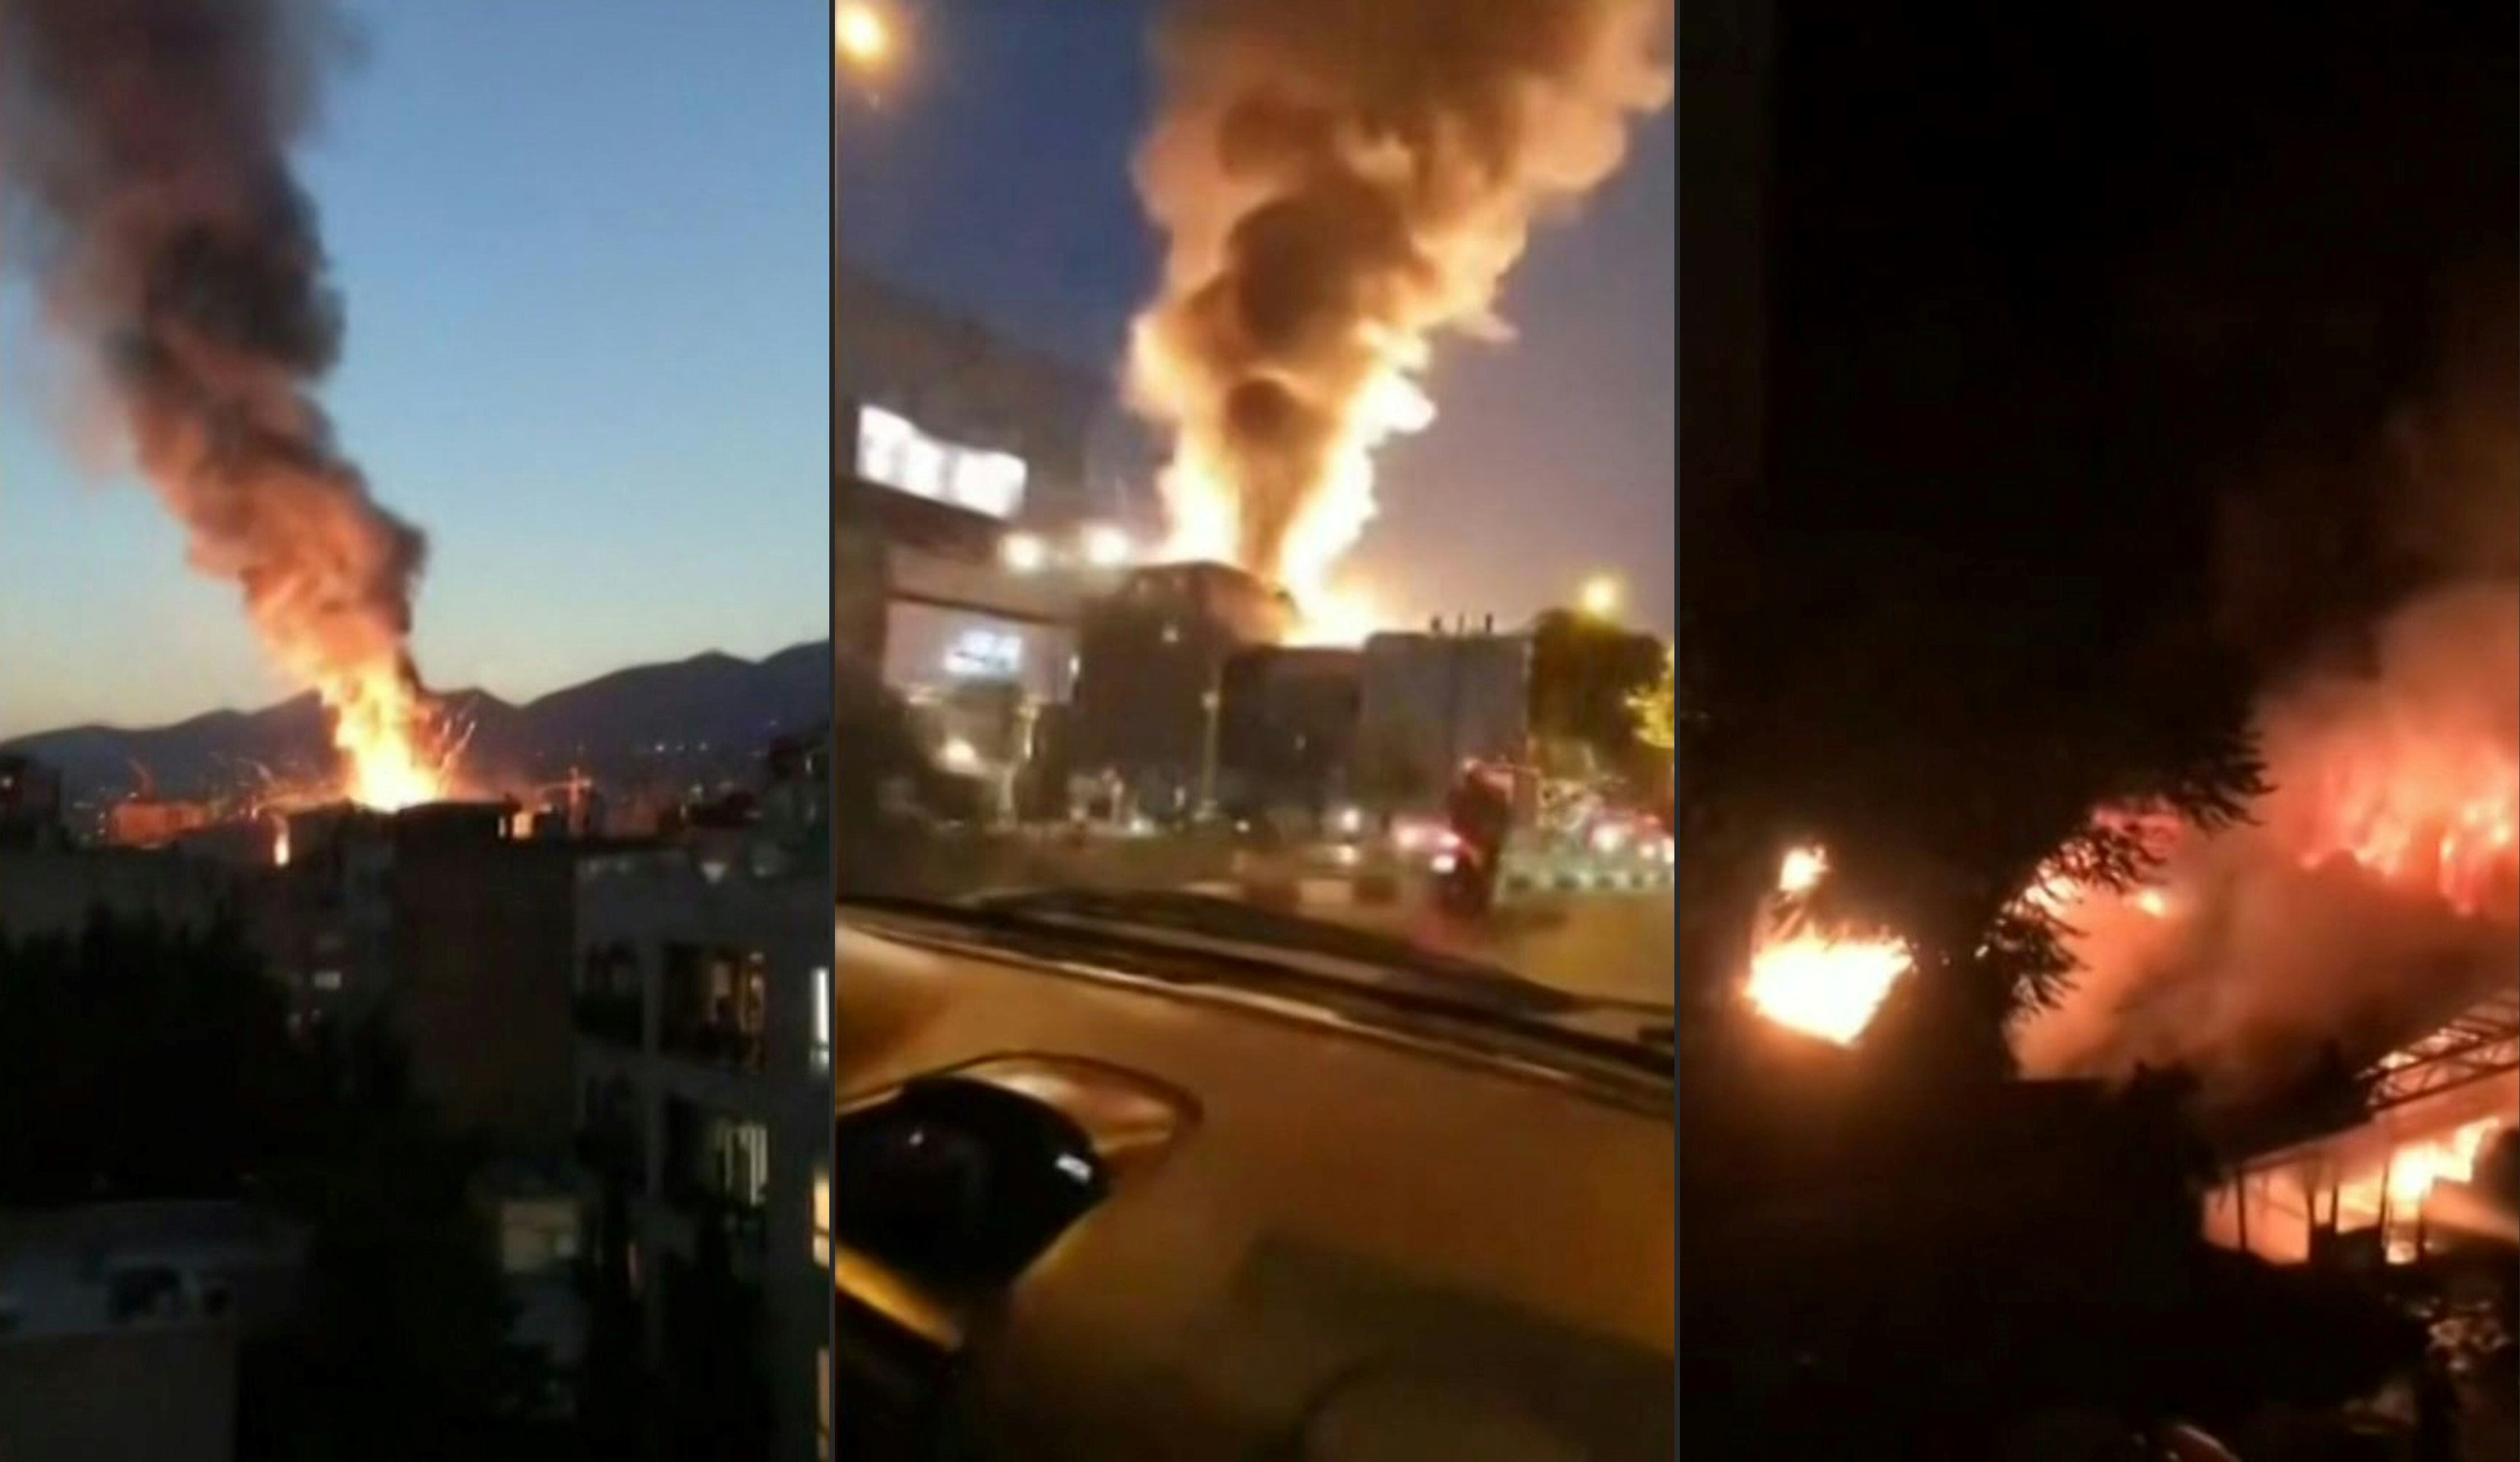 Iran denies latest blast reports and accuses west of misinformation